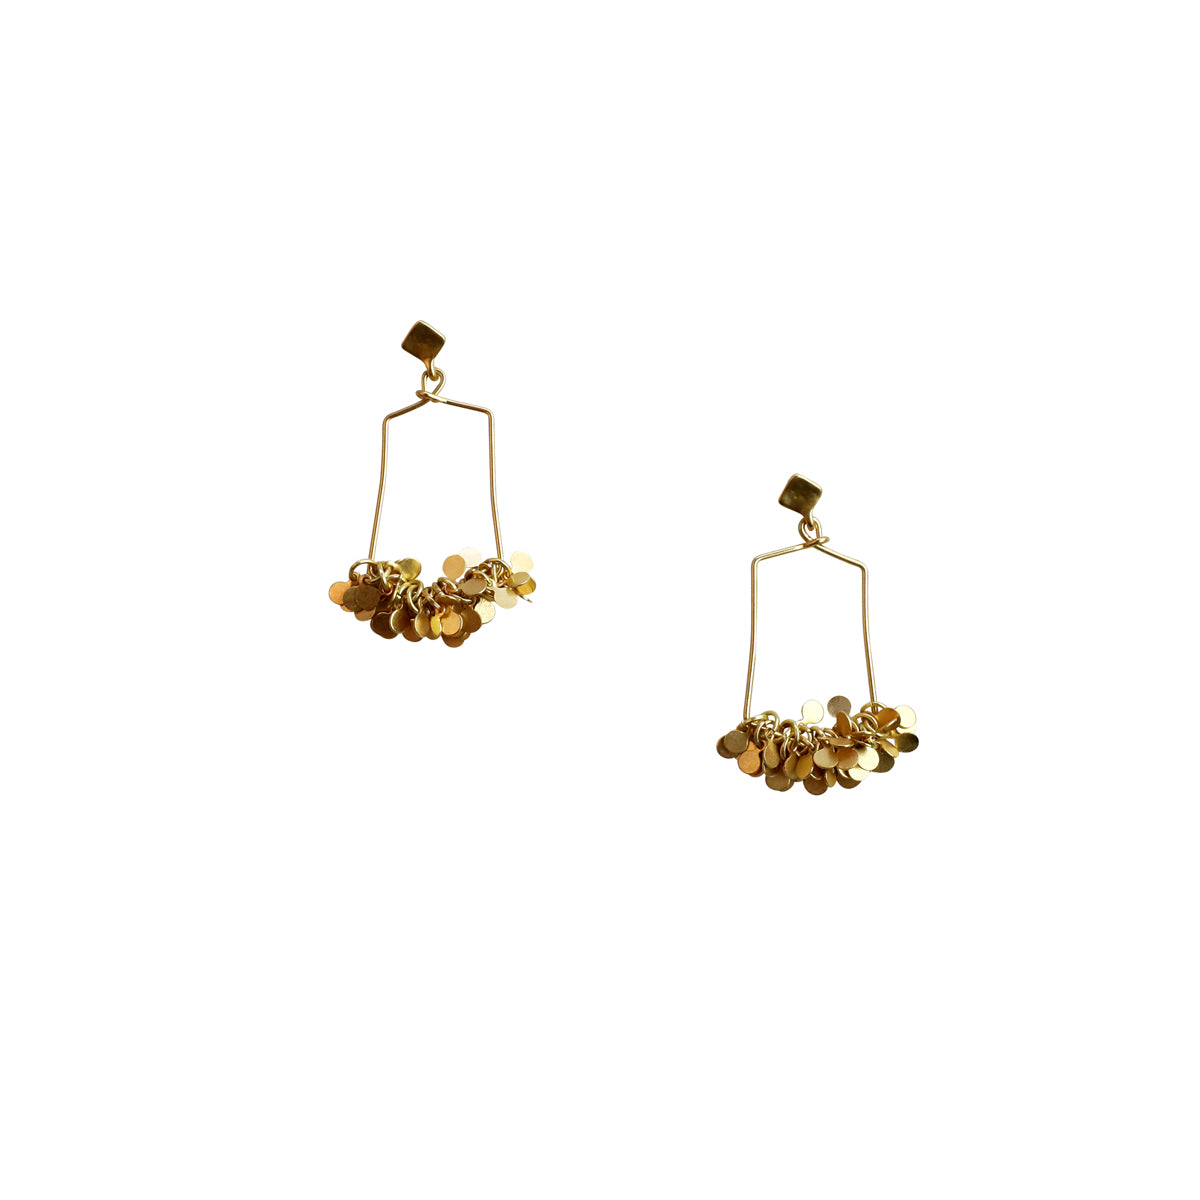 PLACADE EARRINGS - GOLD